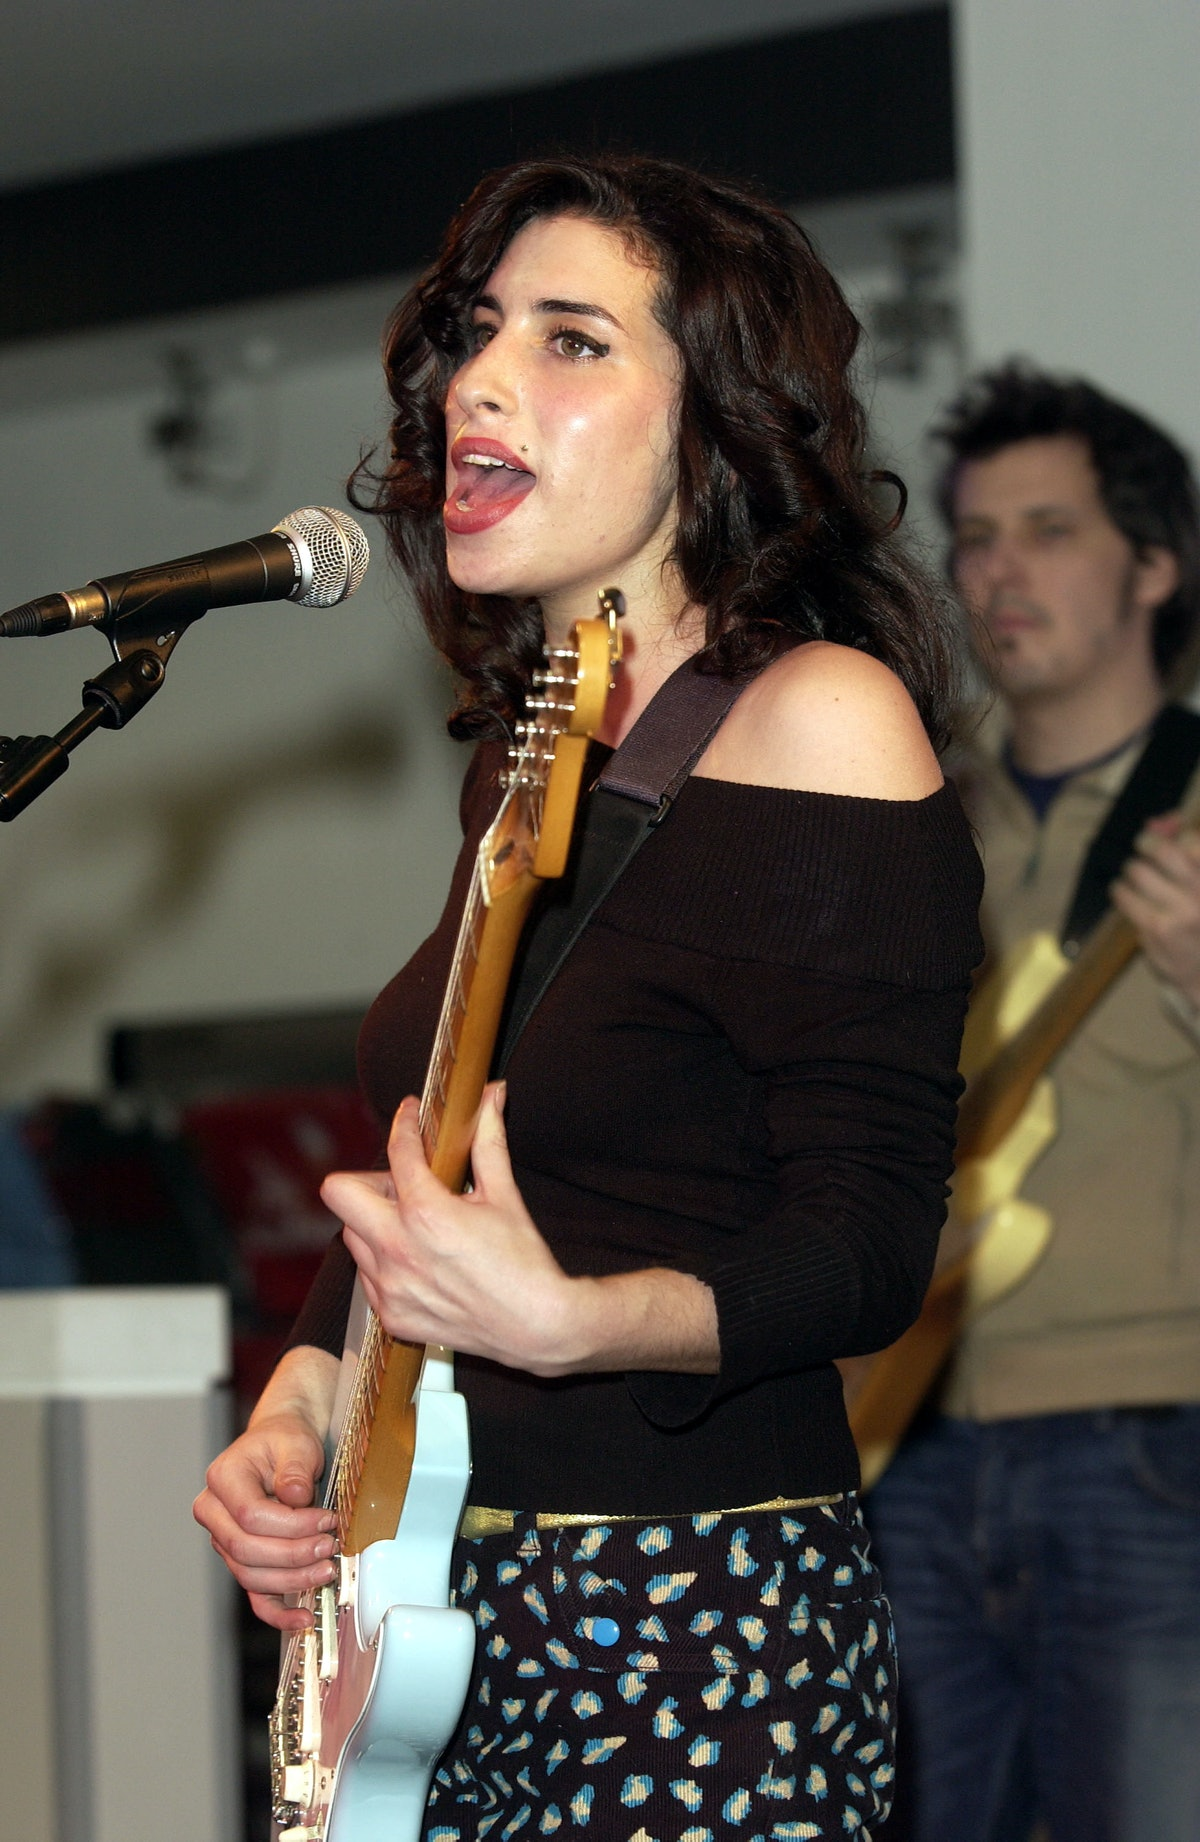 London, Uk - Jazz Singer Amy Winehouse Who Has Been Nominated For A Brit Award Perfomed Live At The ...